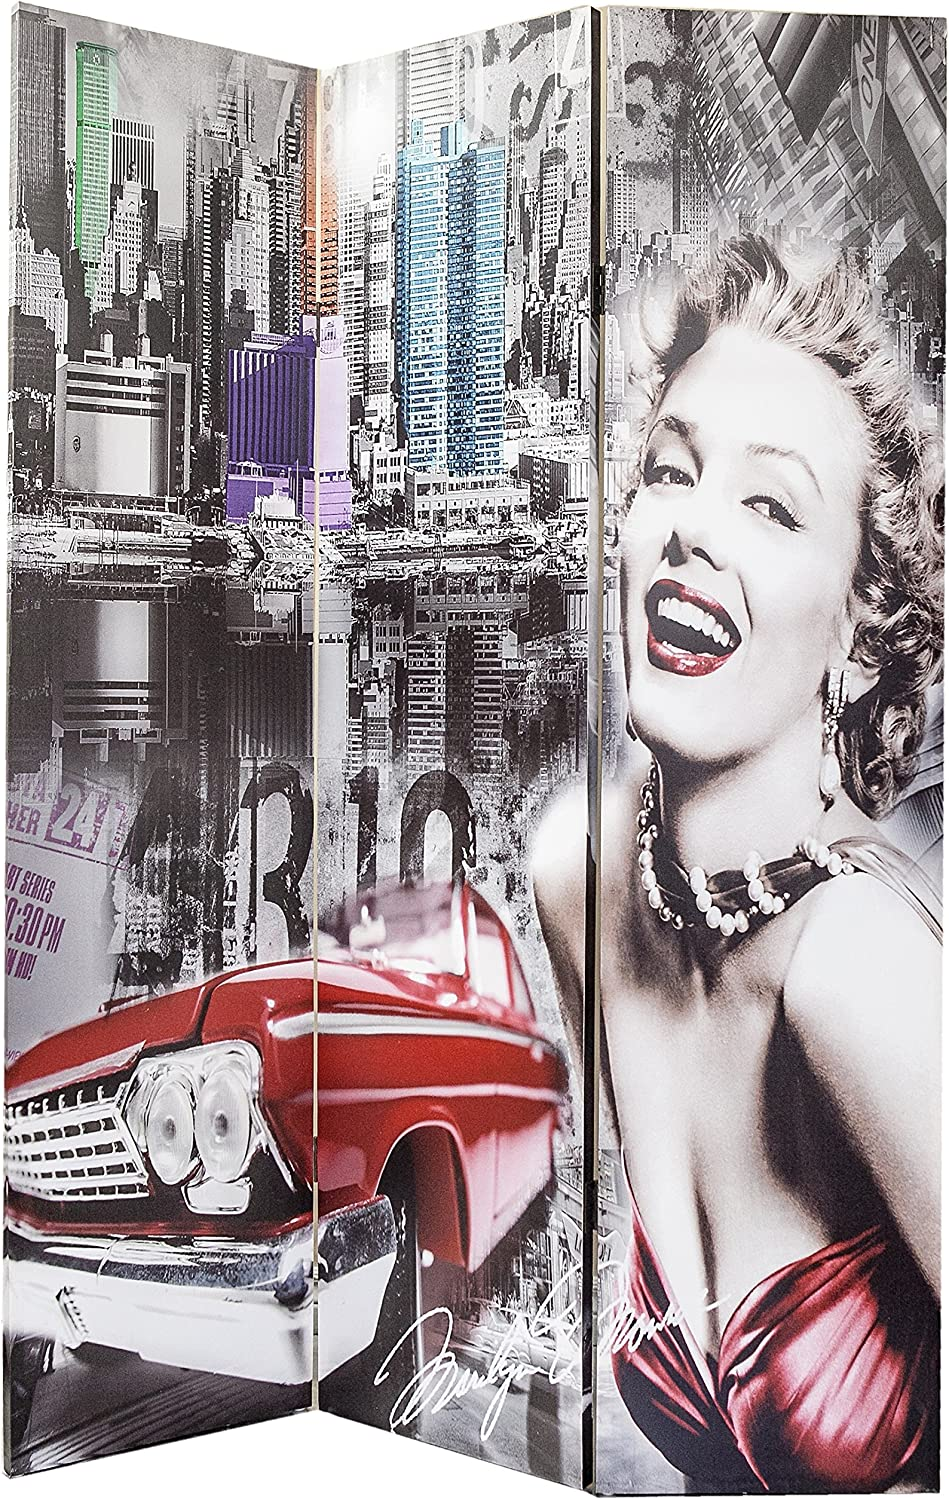 Ih casadecor FA-2069 Marilyn Monroe Screen